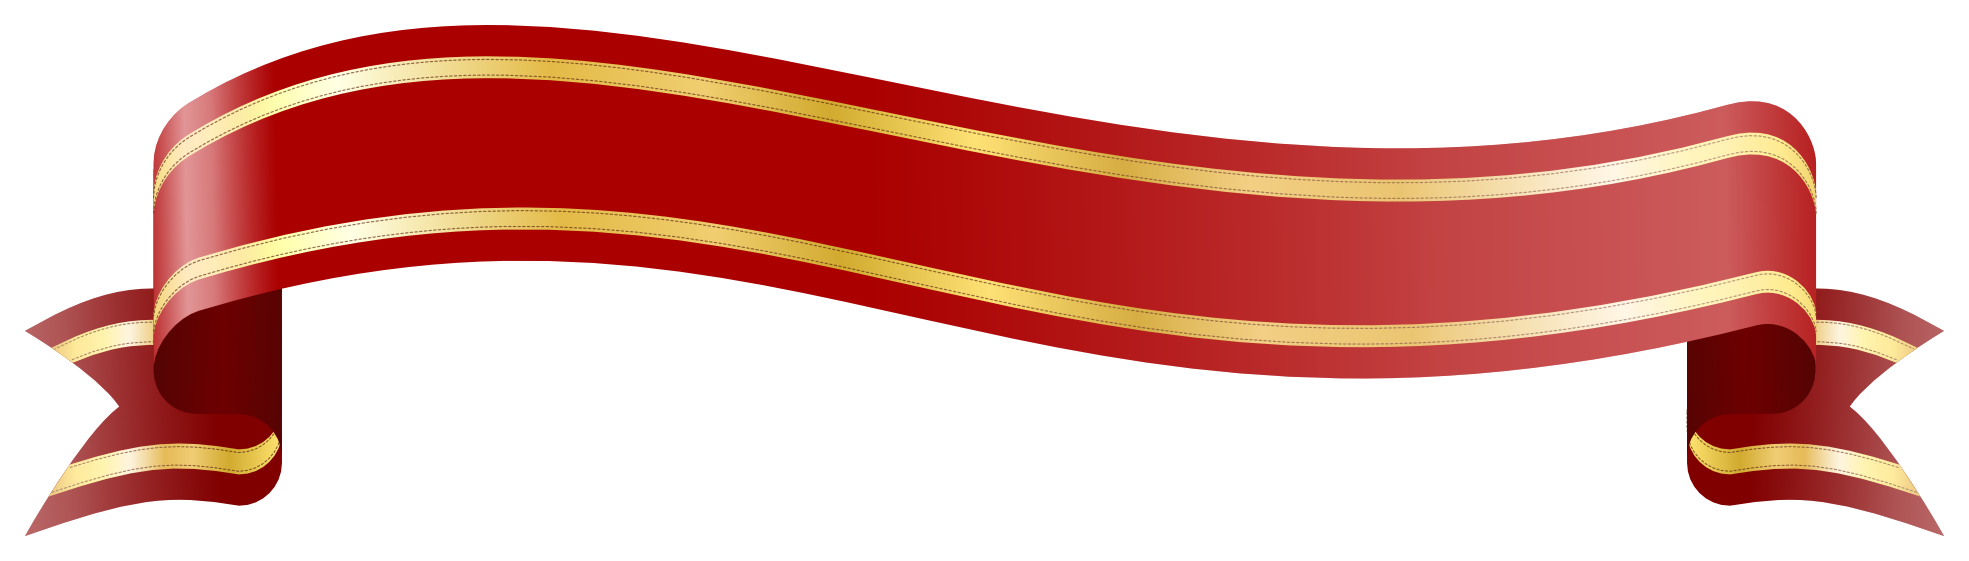 Celebration ribbon png. Images red gift free